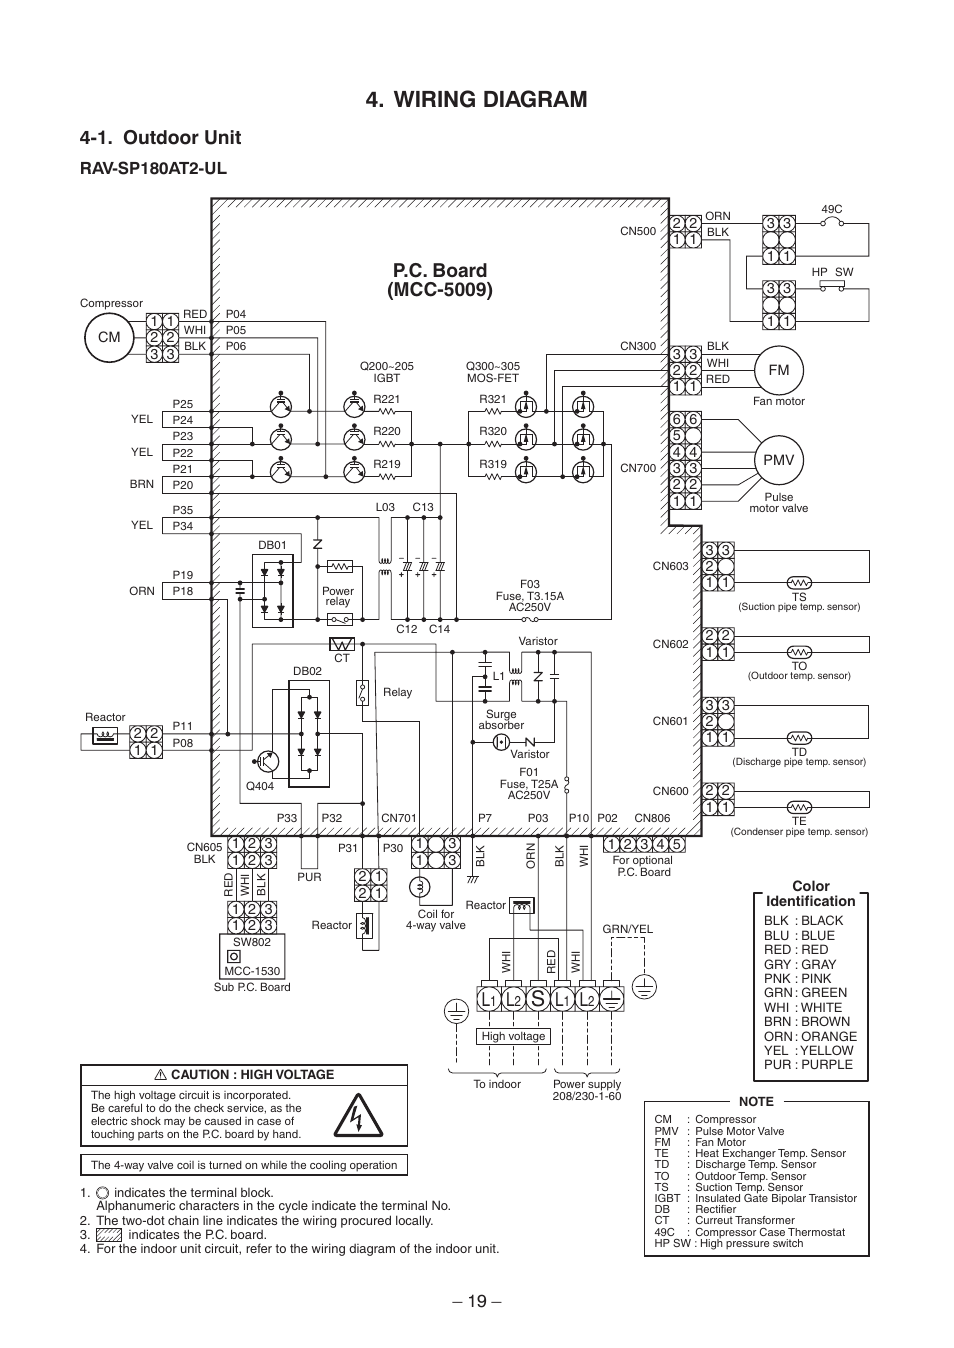 Wiring Diagram  1  Outdoor Unit  P C  Board  Mcc